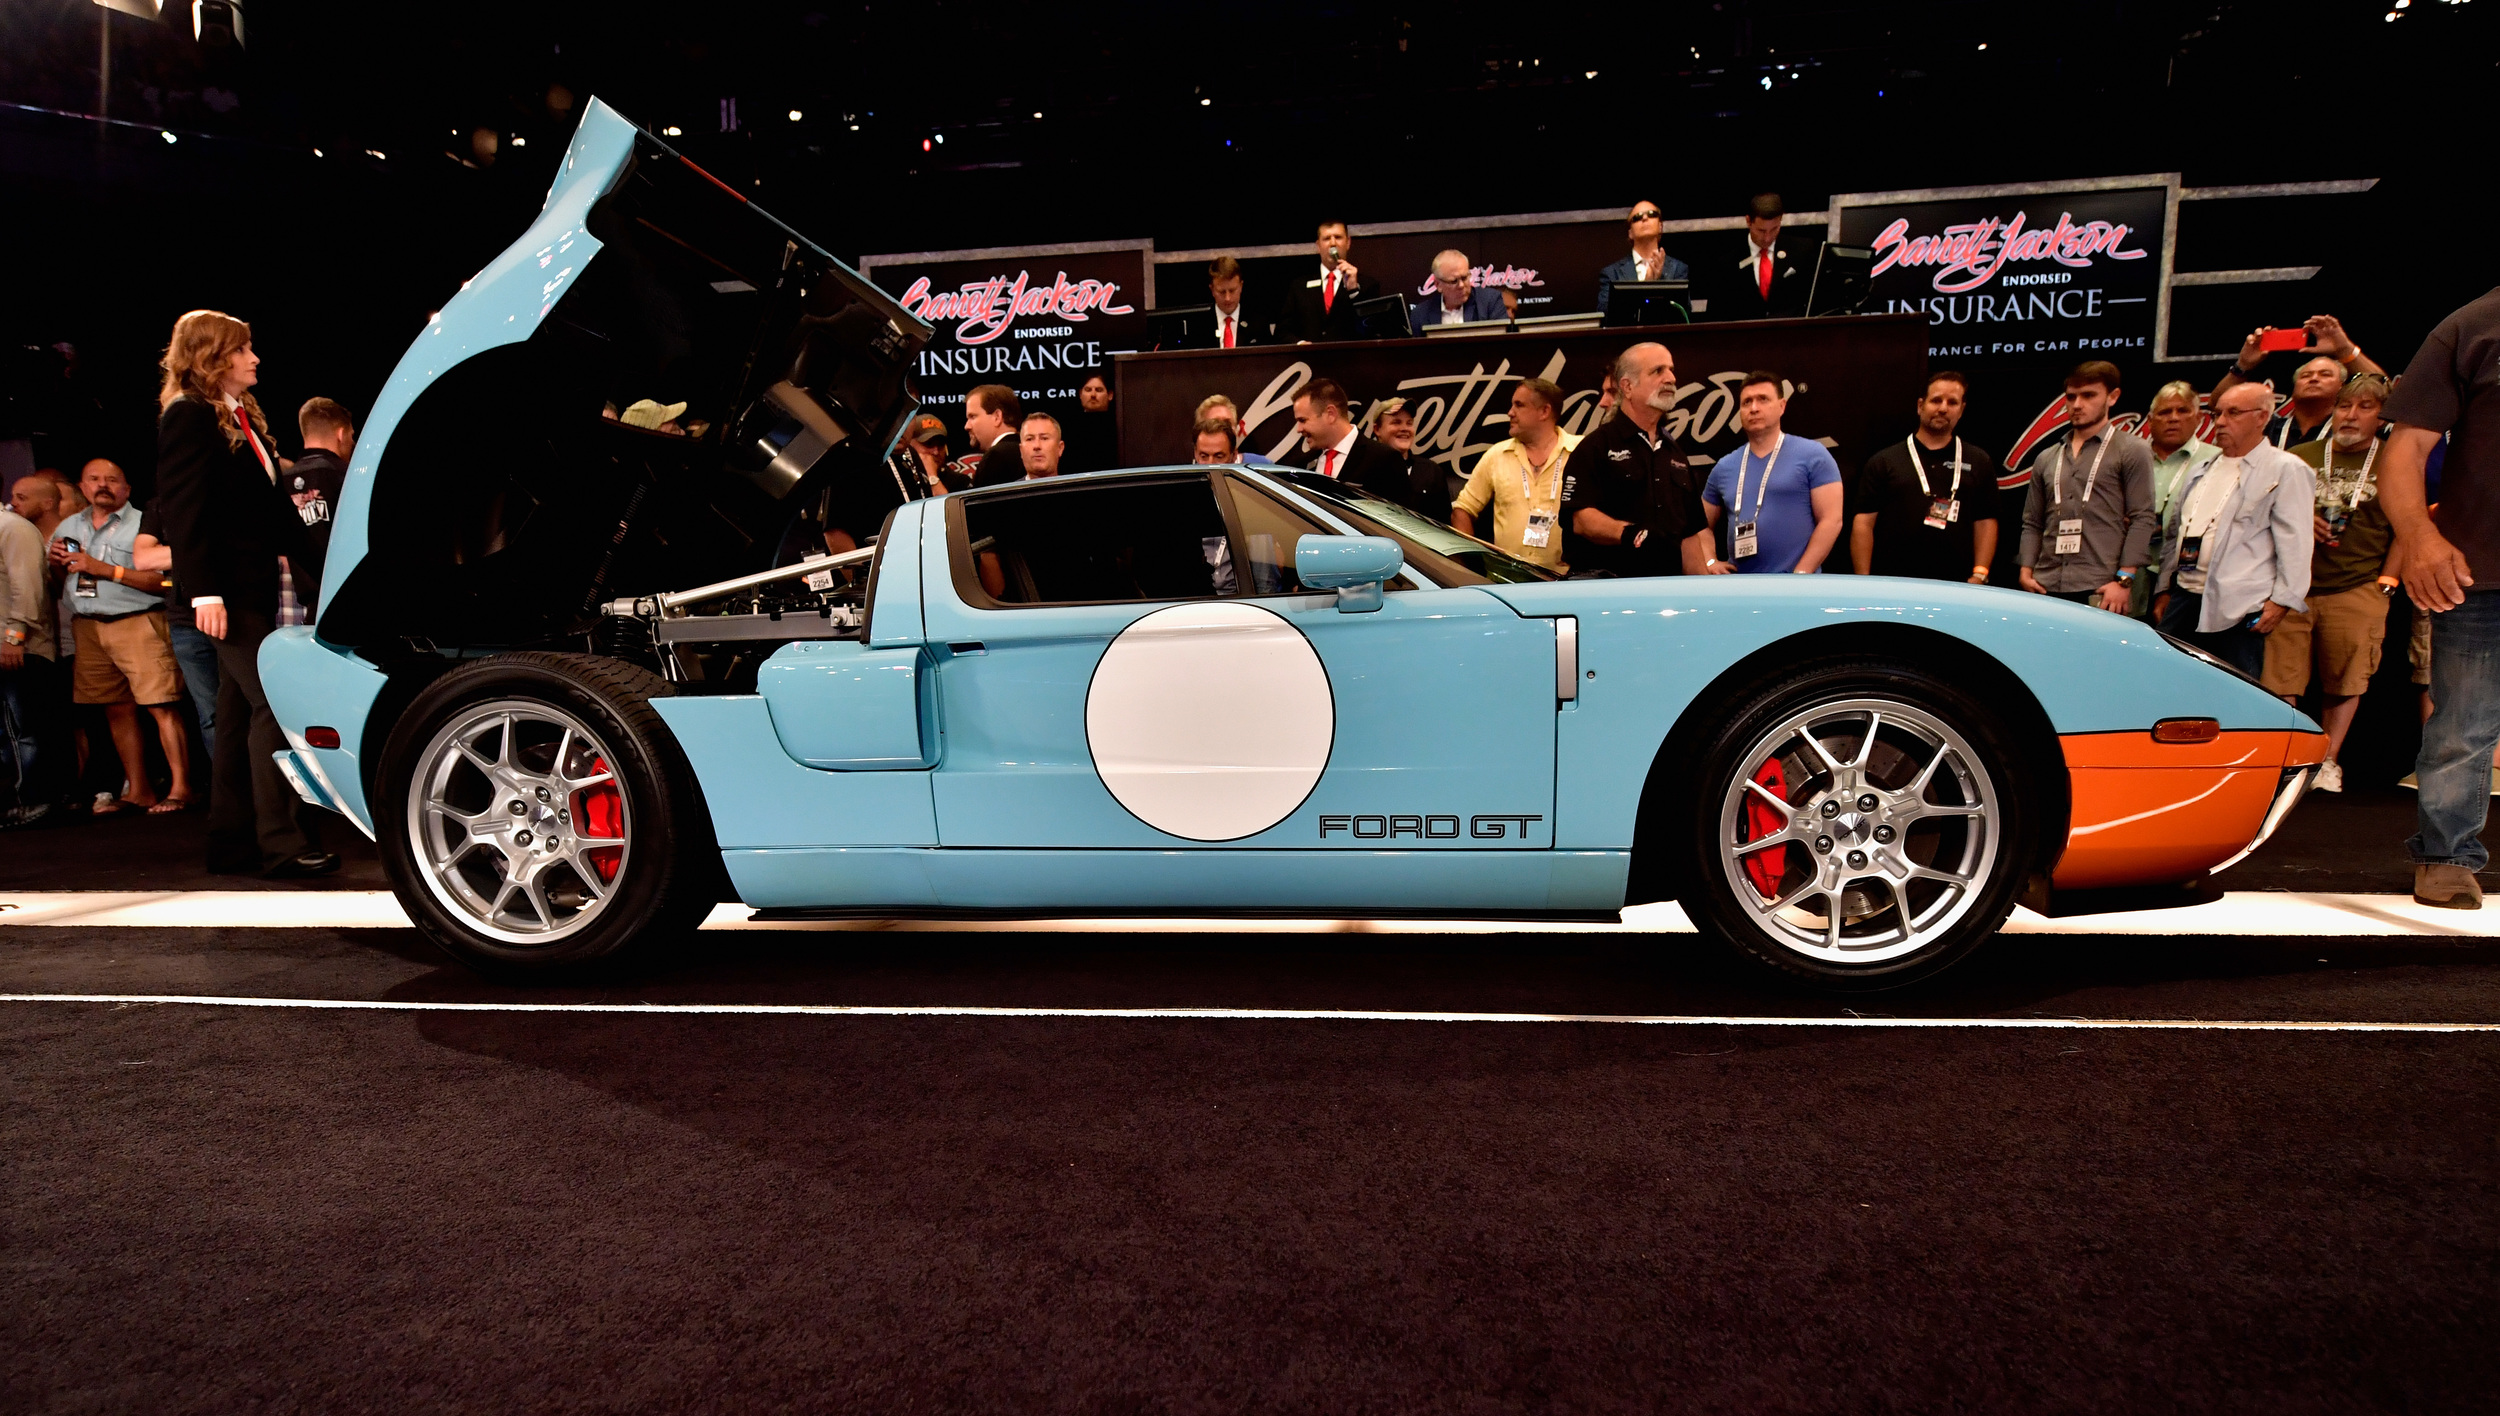 Barrett Jackson Auction at Mohegan Sun